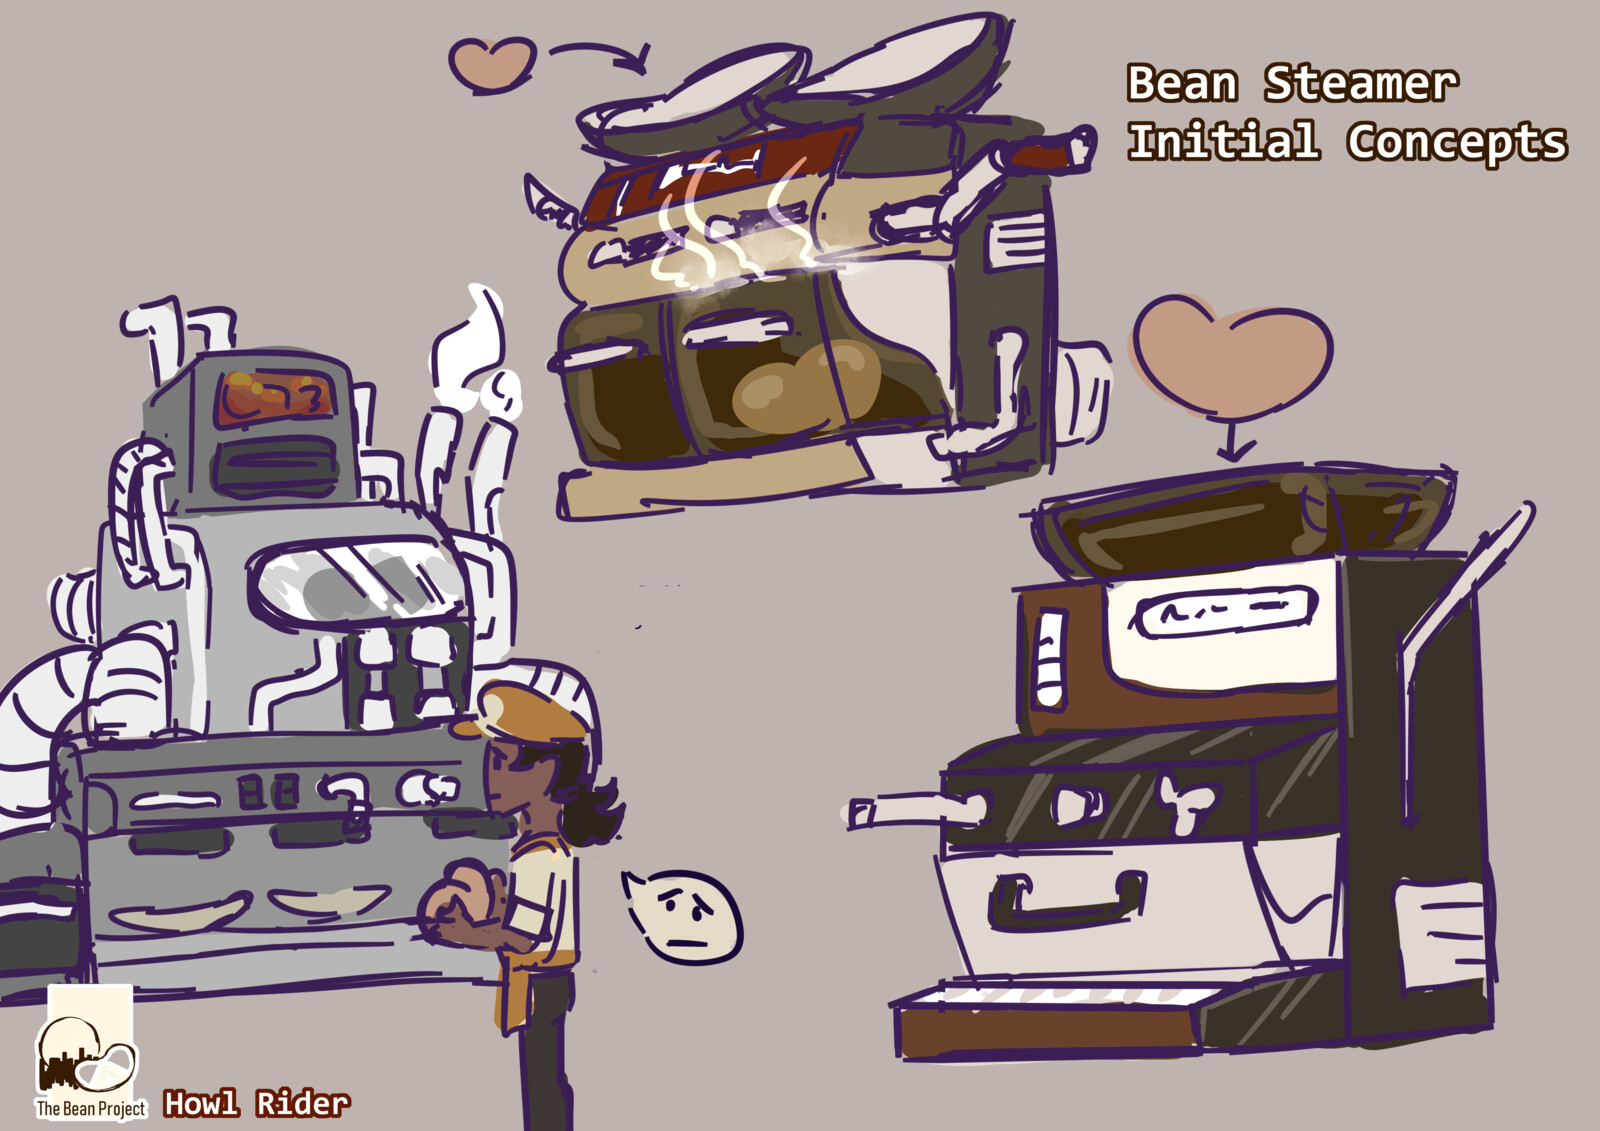 Concepts of what the steamer might look like.